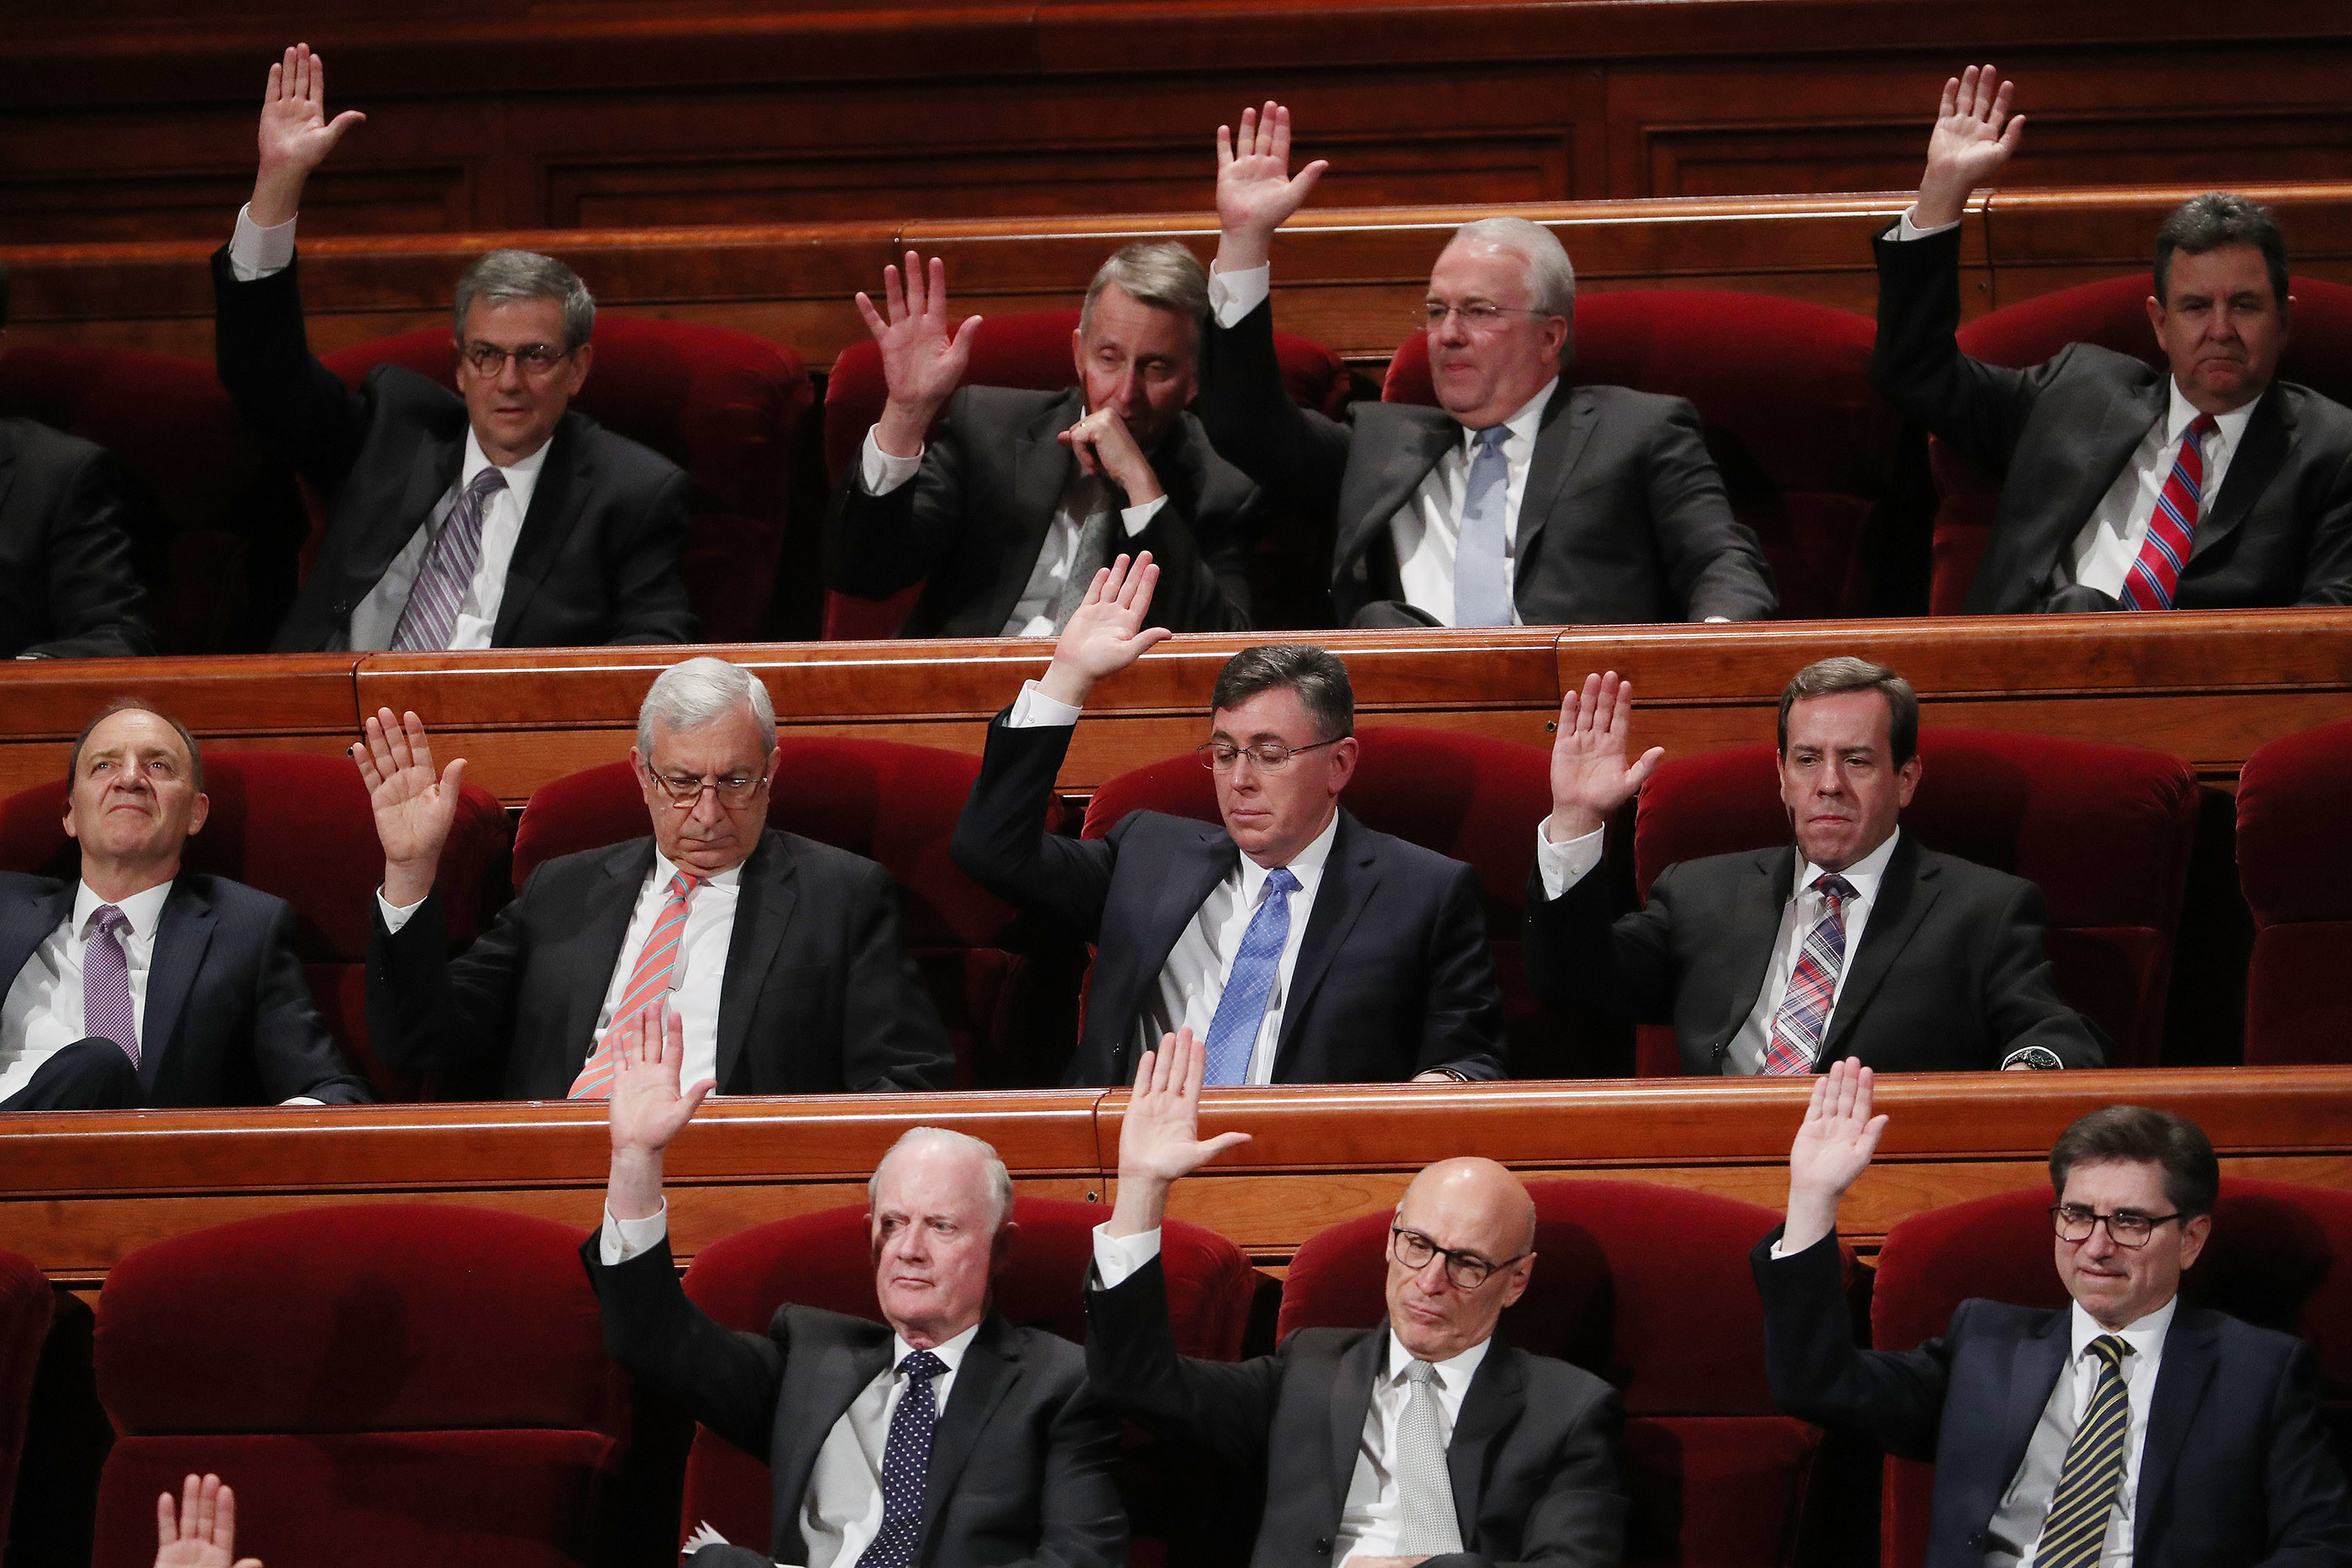 General Authorities sustain leaders the Saturday afternoon session of the 189th Annual General Conference of The Church of Jesus Christ of Latter-day Saints in the Conference Center in Salt Lake City on Saturday, April 6, 2019.